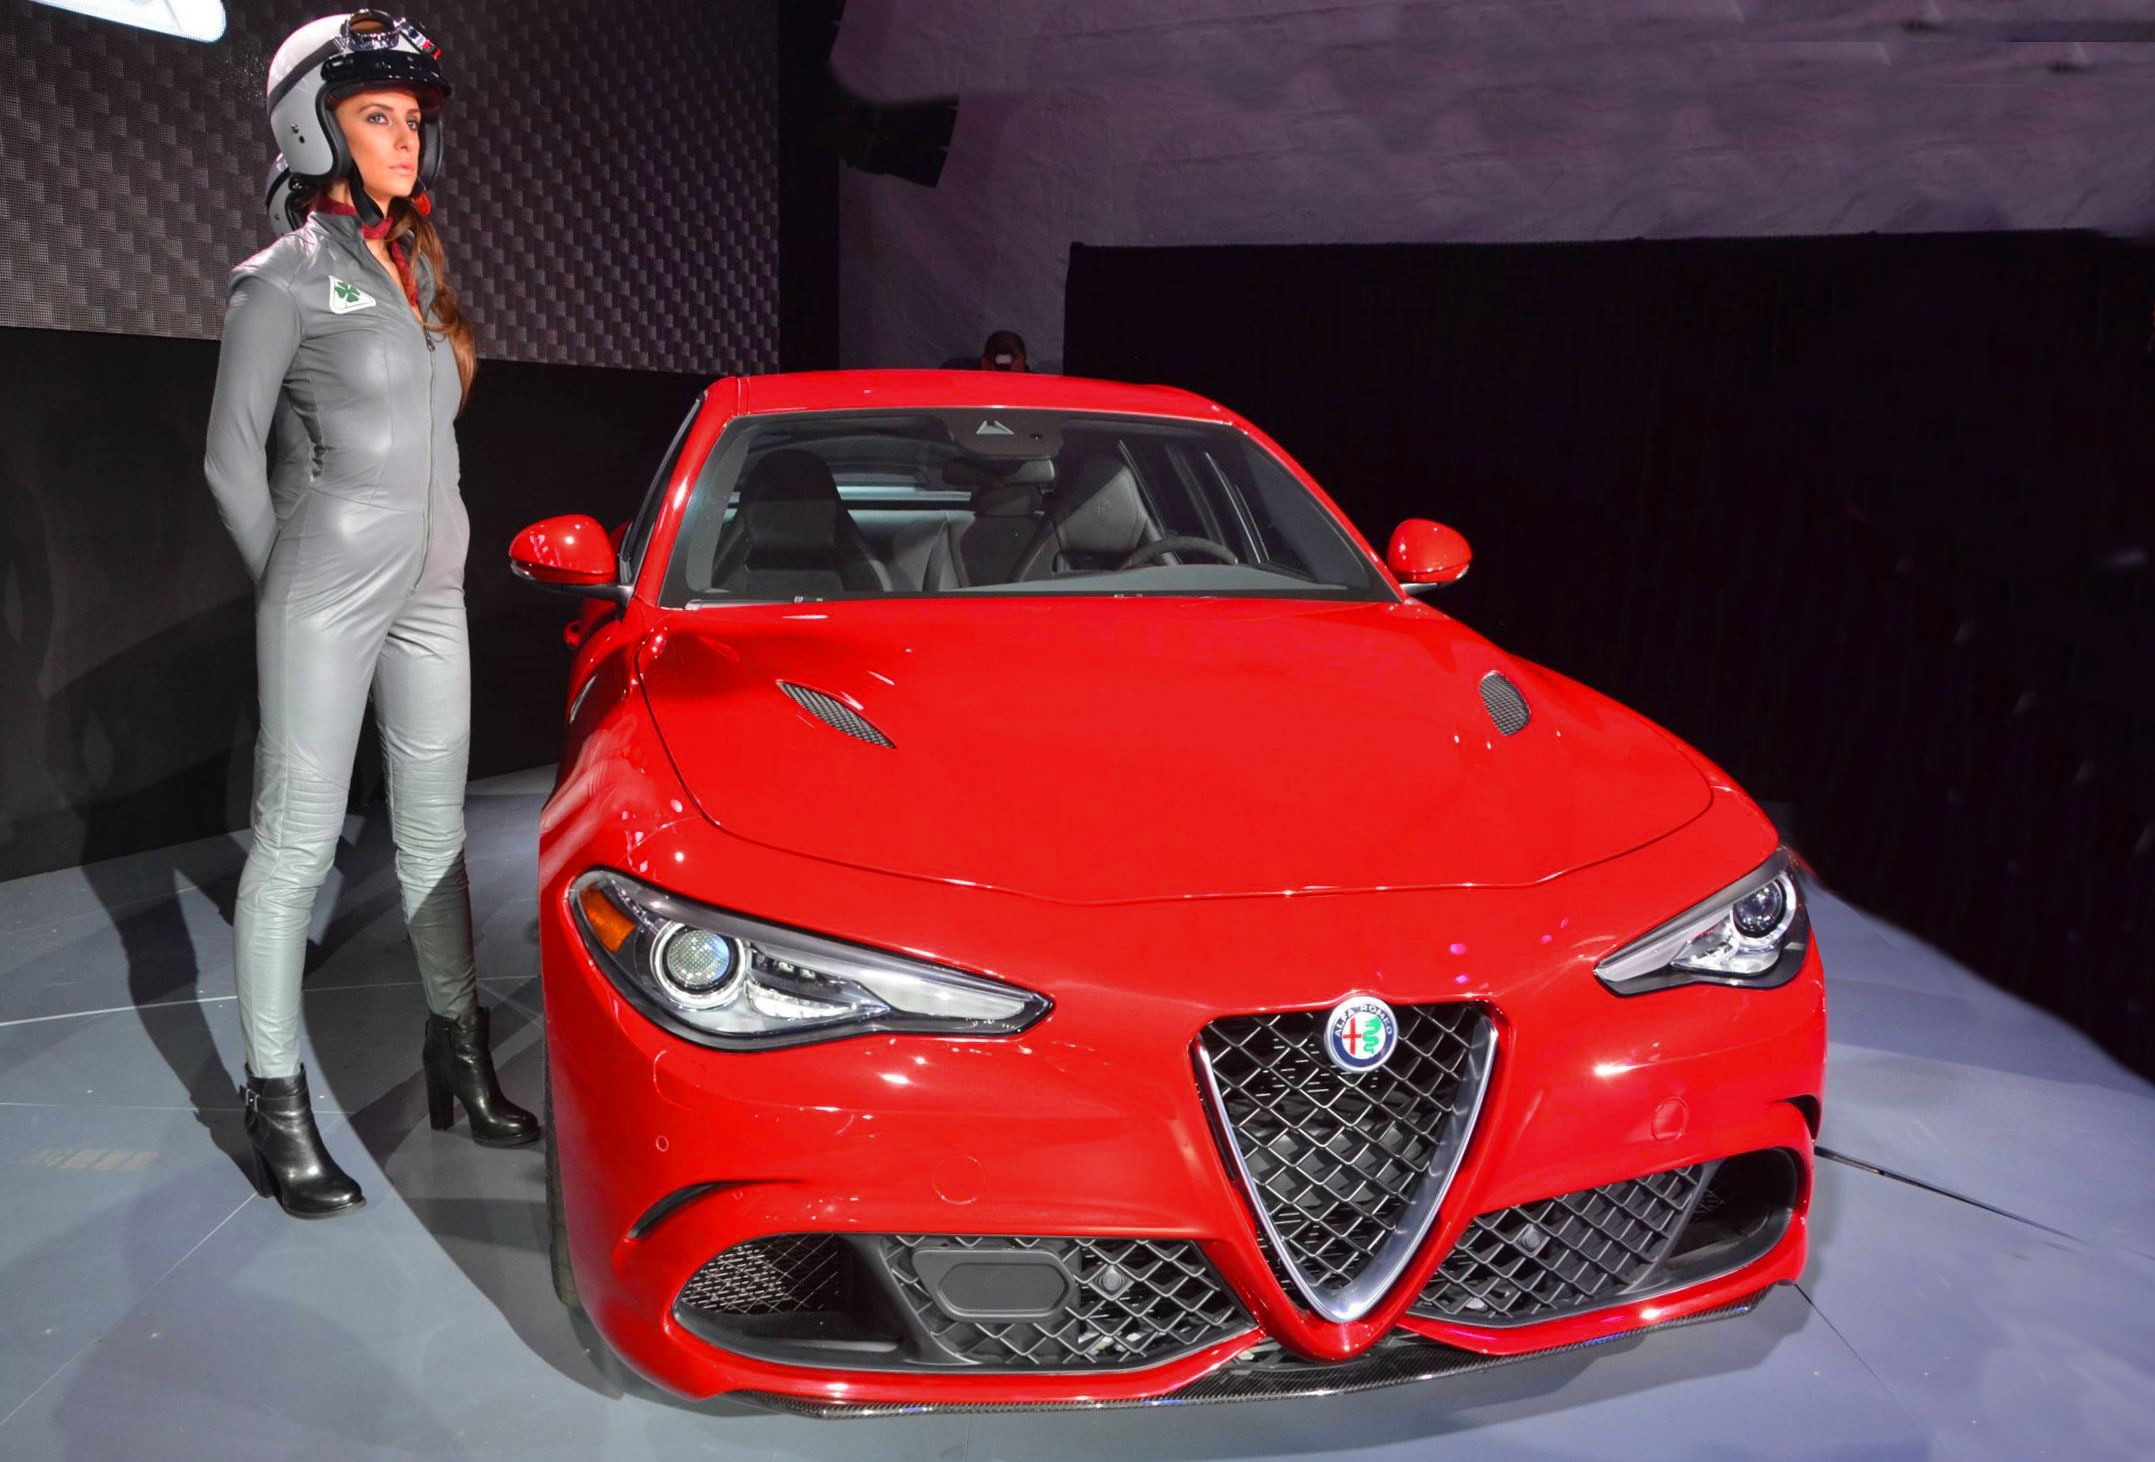 Alfa Giulia] Impressies en scoops